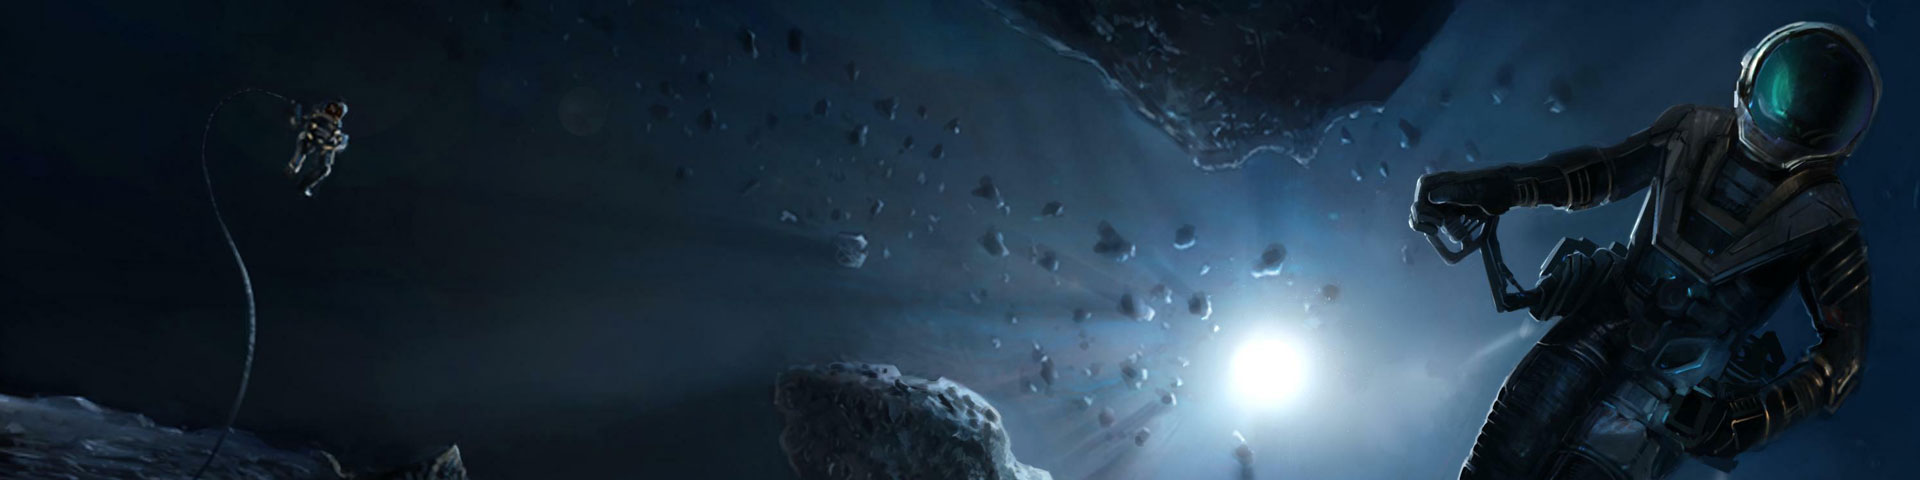 An slim-suited astronaut flies through an asteroid field. A blue-white sun shines in deep space.